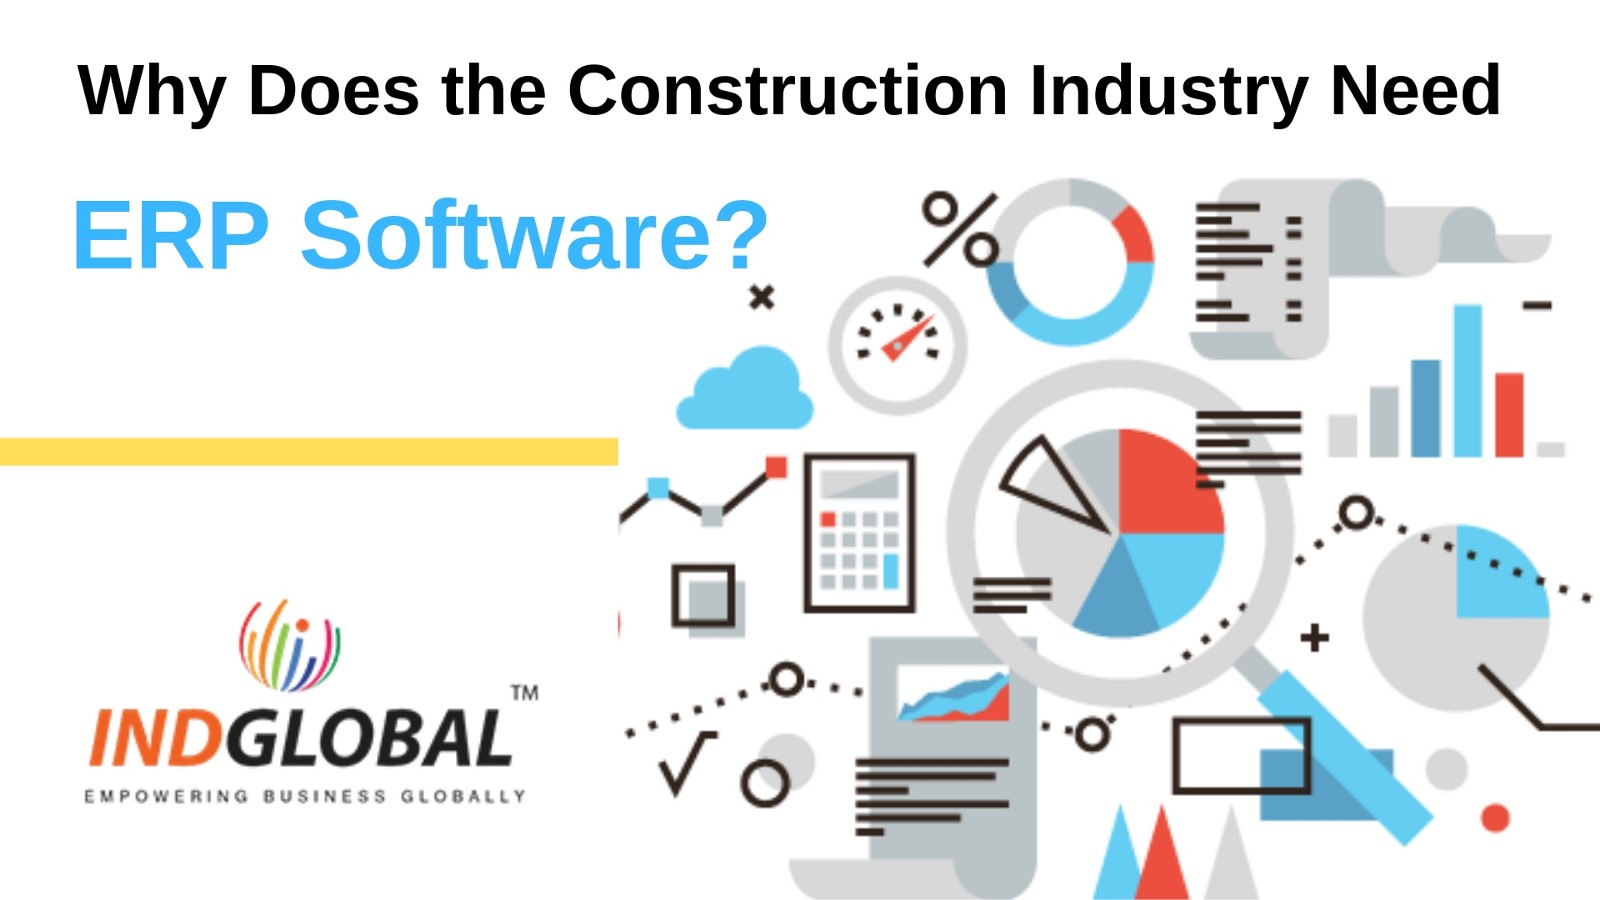 Why Does the Construction Industry Need ERP Software?